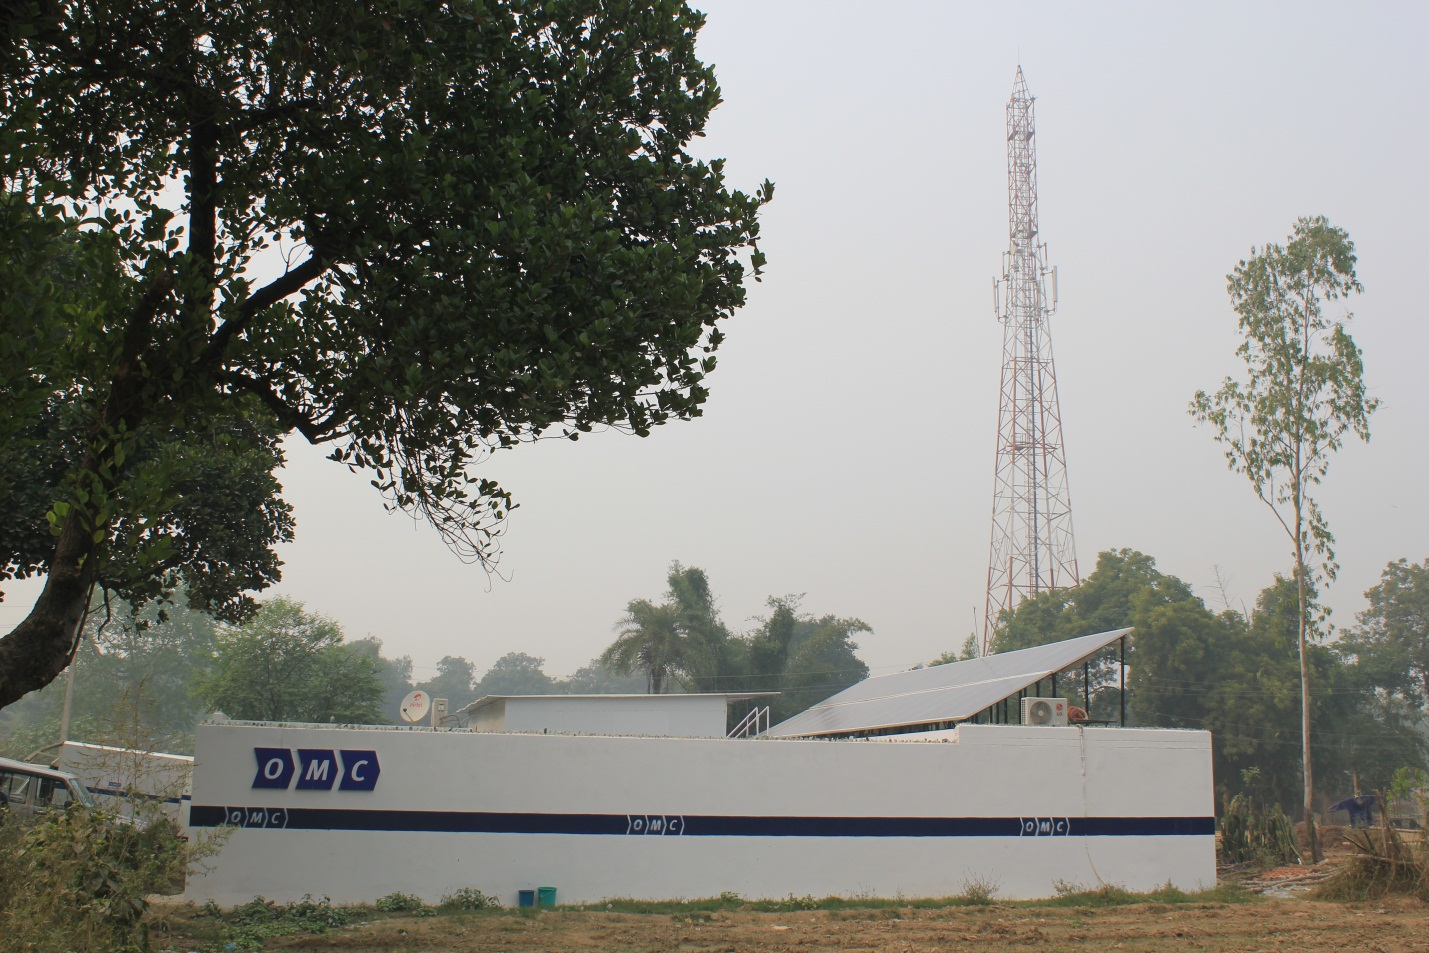 India solar cell tower pic 2.jpg